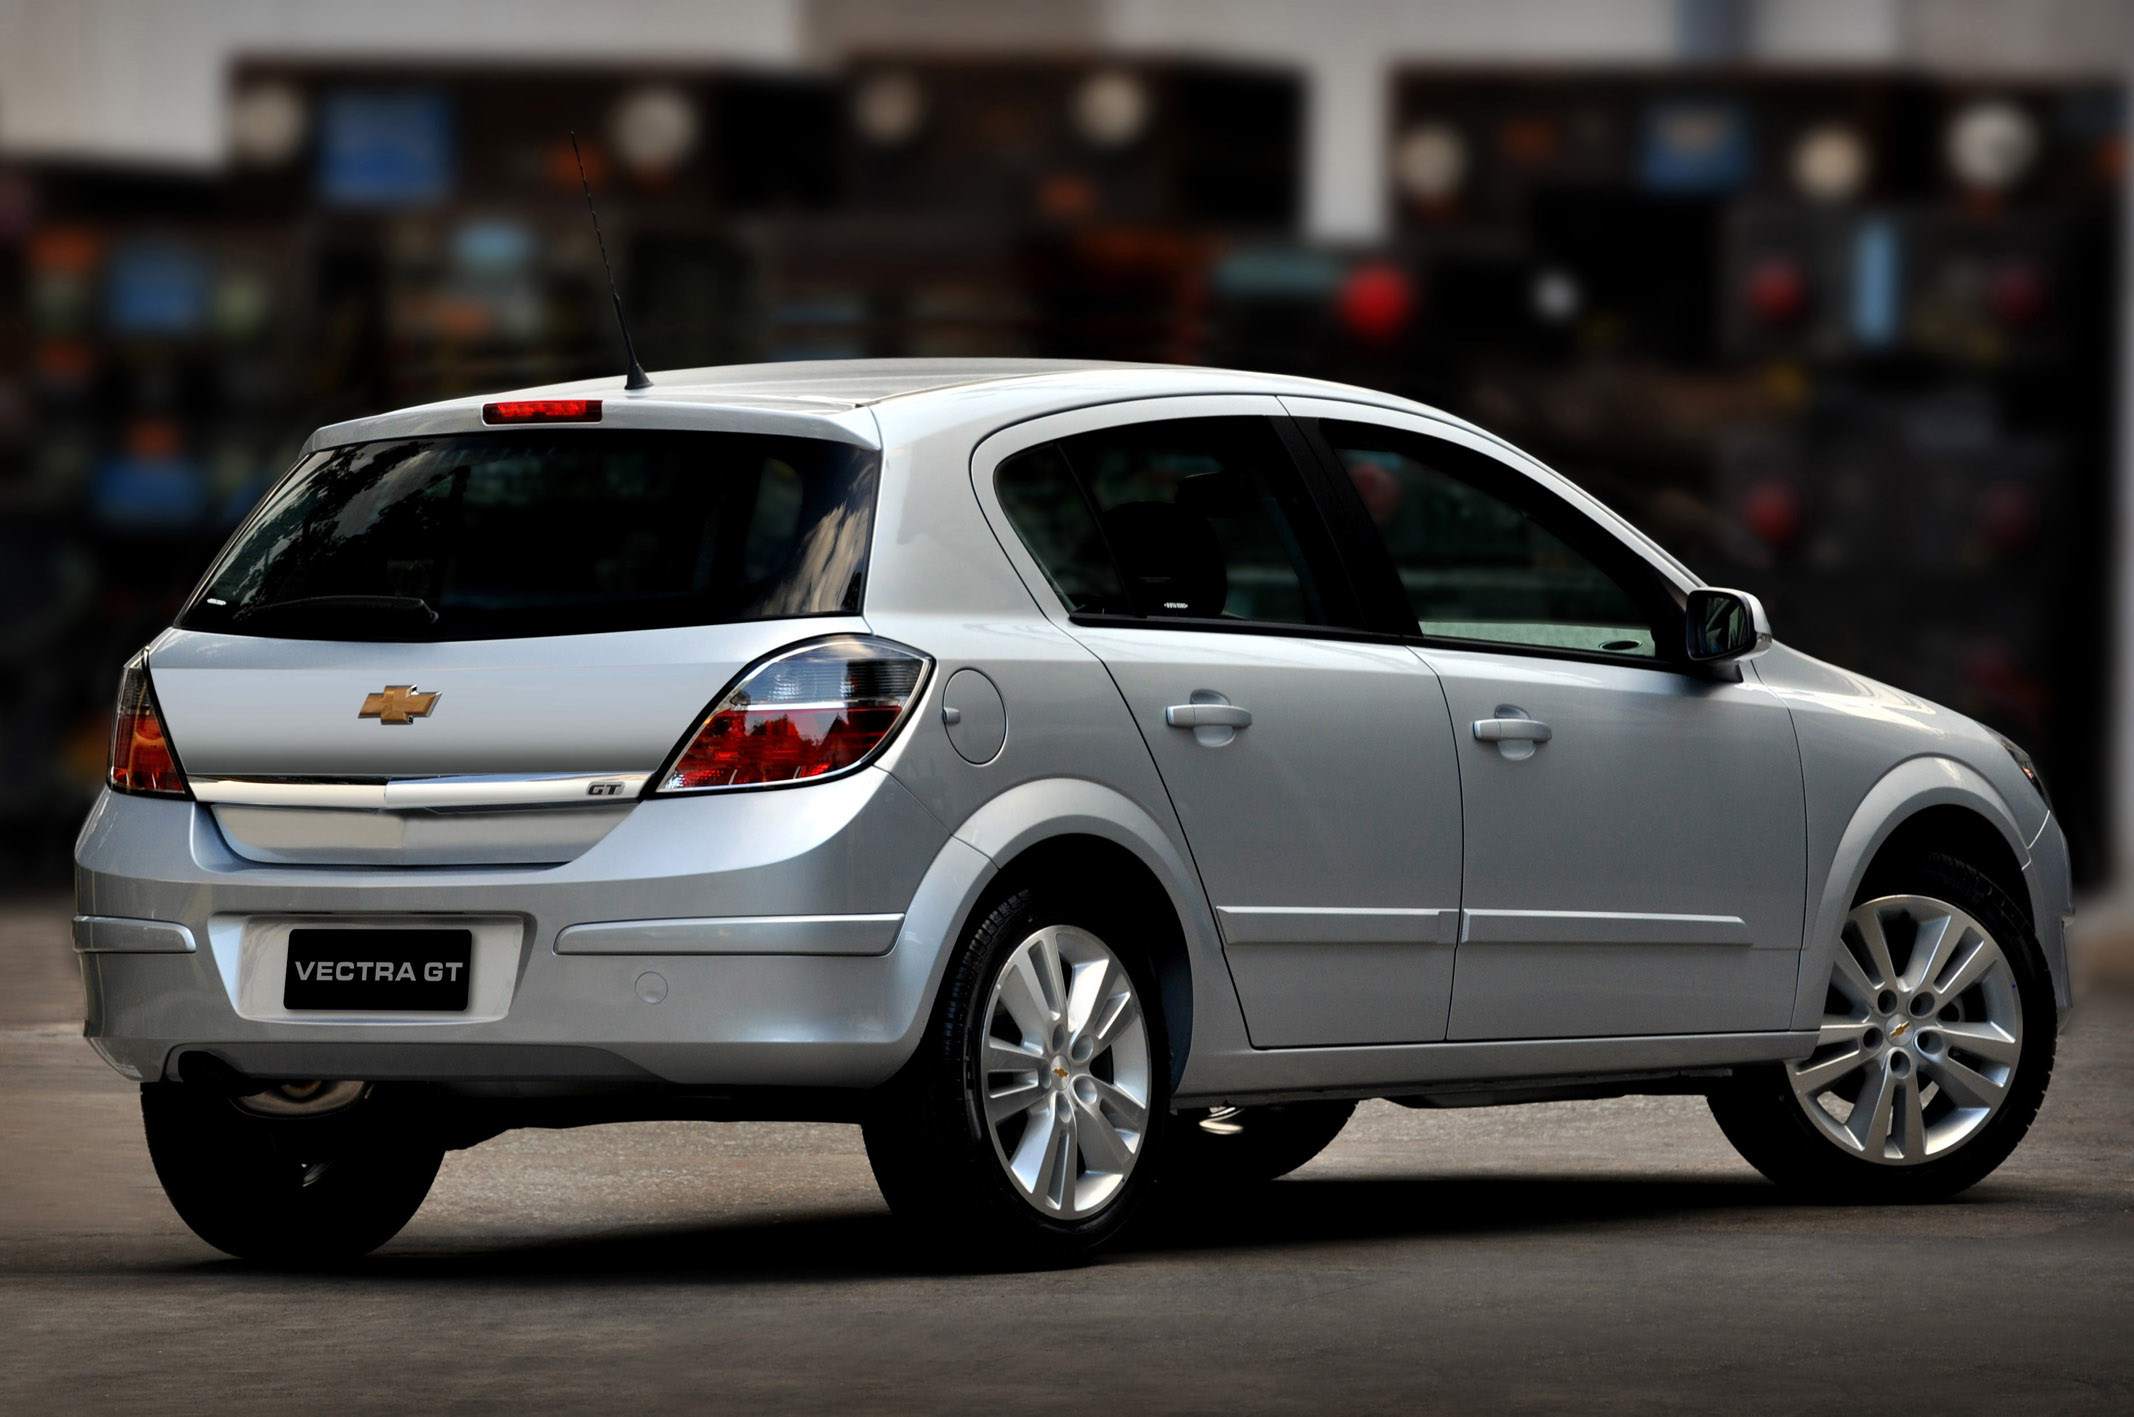 2013 honda sedan with Novo Chevrolet Vectra Gt 2011 on 2011 Bmw X3 as well 2001 further Chevrolet Bel Air together with Carreteratunel Guoliang China moreover 2017 Honda Clarity Fuel Cell.